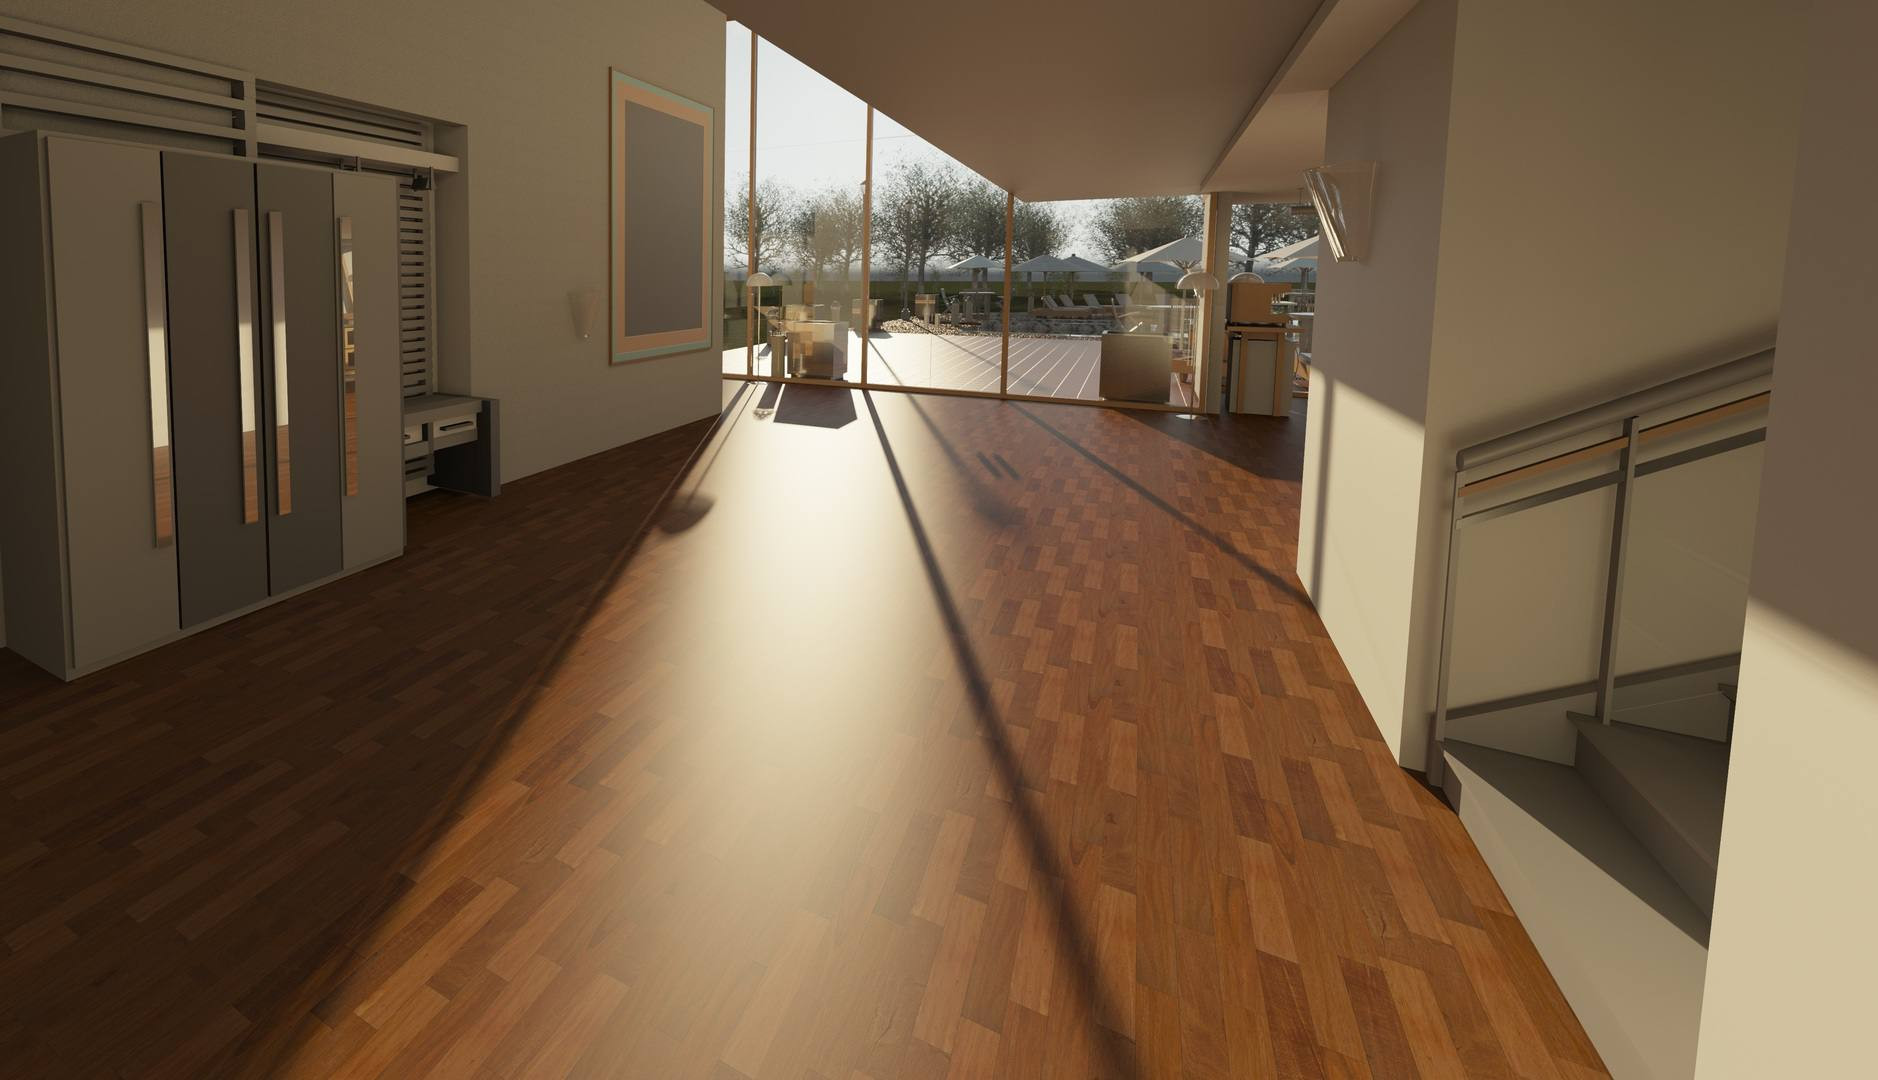 prefinished hardwood floor cleaning tips of common flooring types currently used in renovation and building throughout architecture wood house floor interior window 917178 pxhere com 5ba27a2cc9e77c00503b27b9